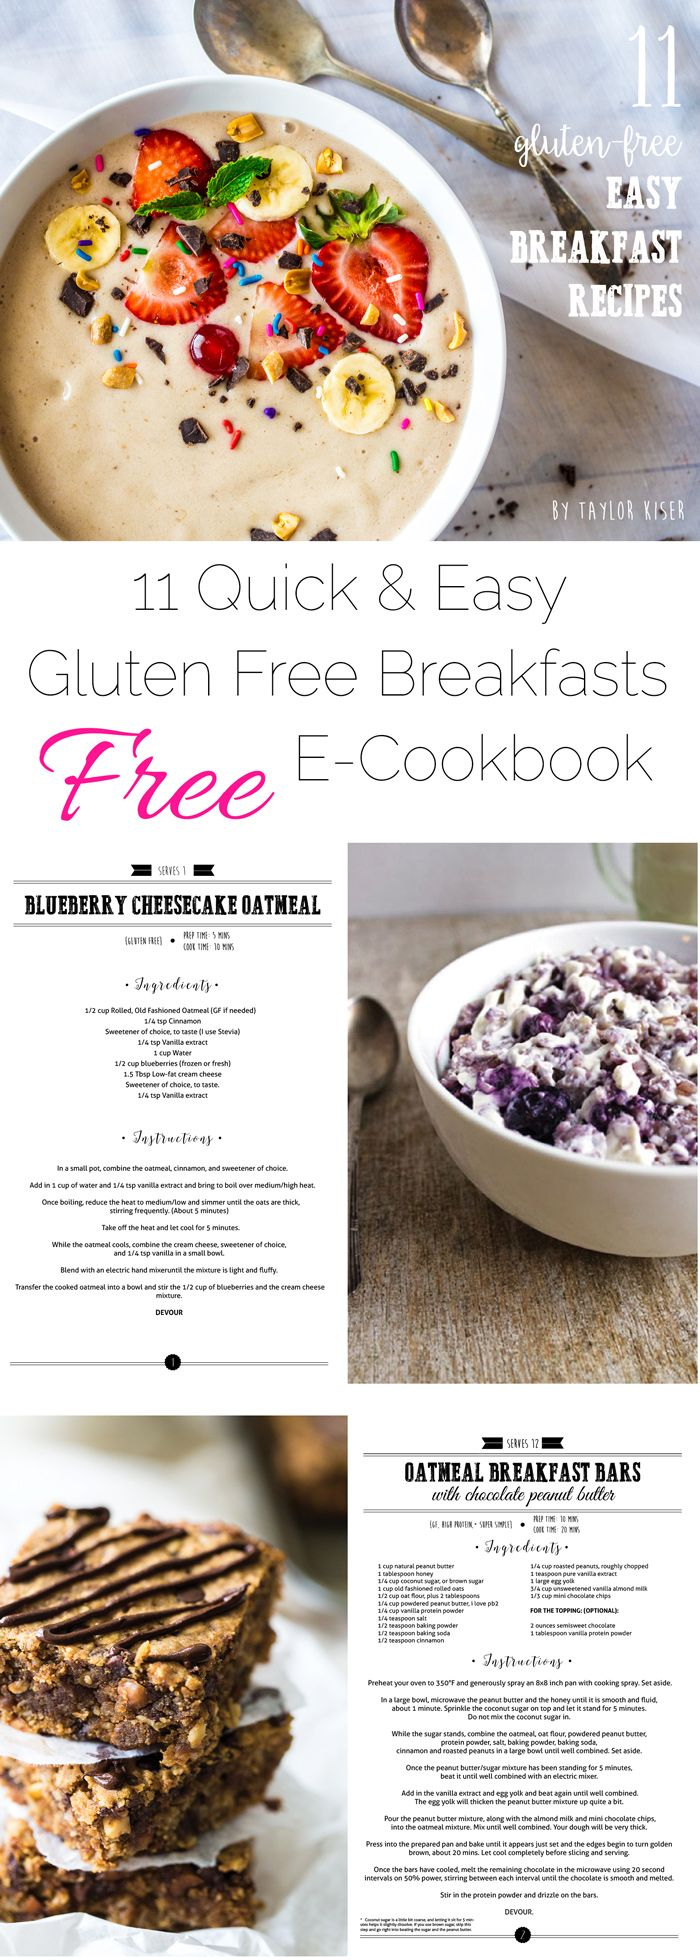 Do you need some healthy, gluten free breakfast inspiration?! Then you NEED this FREE e-cookbook that has 11 amazingly delicious recipes! | Foodfaithfitness.com | @FoodFaithFit